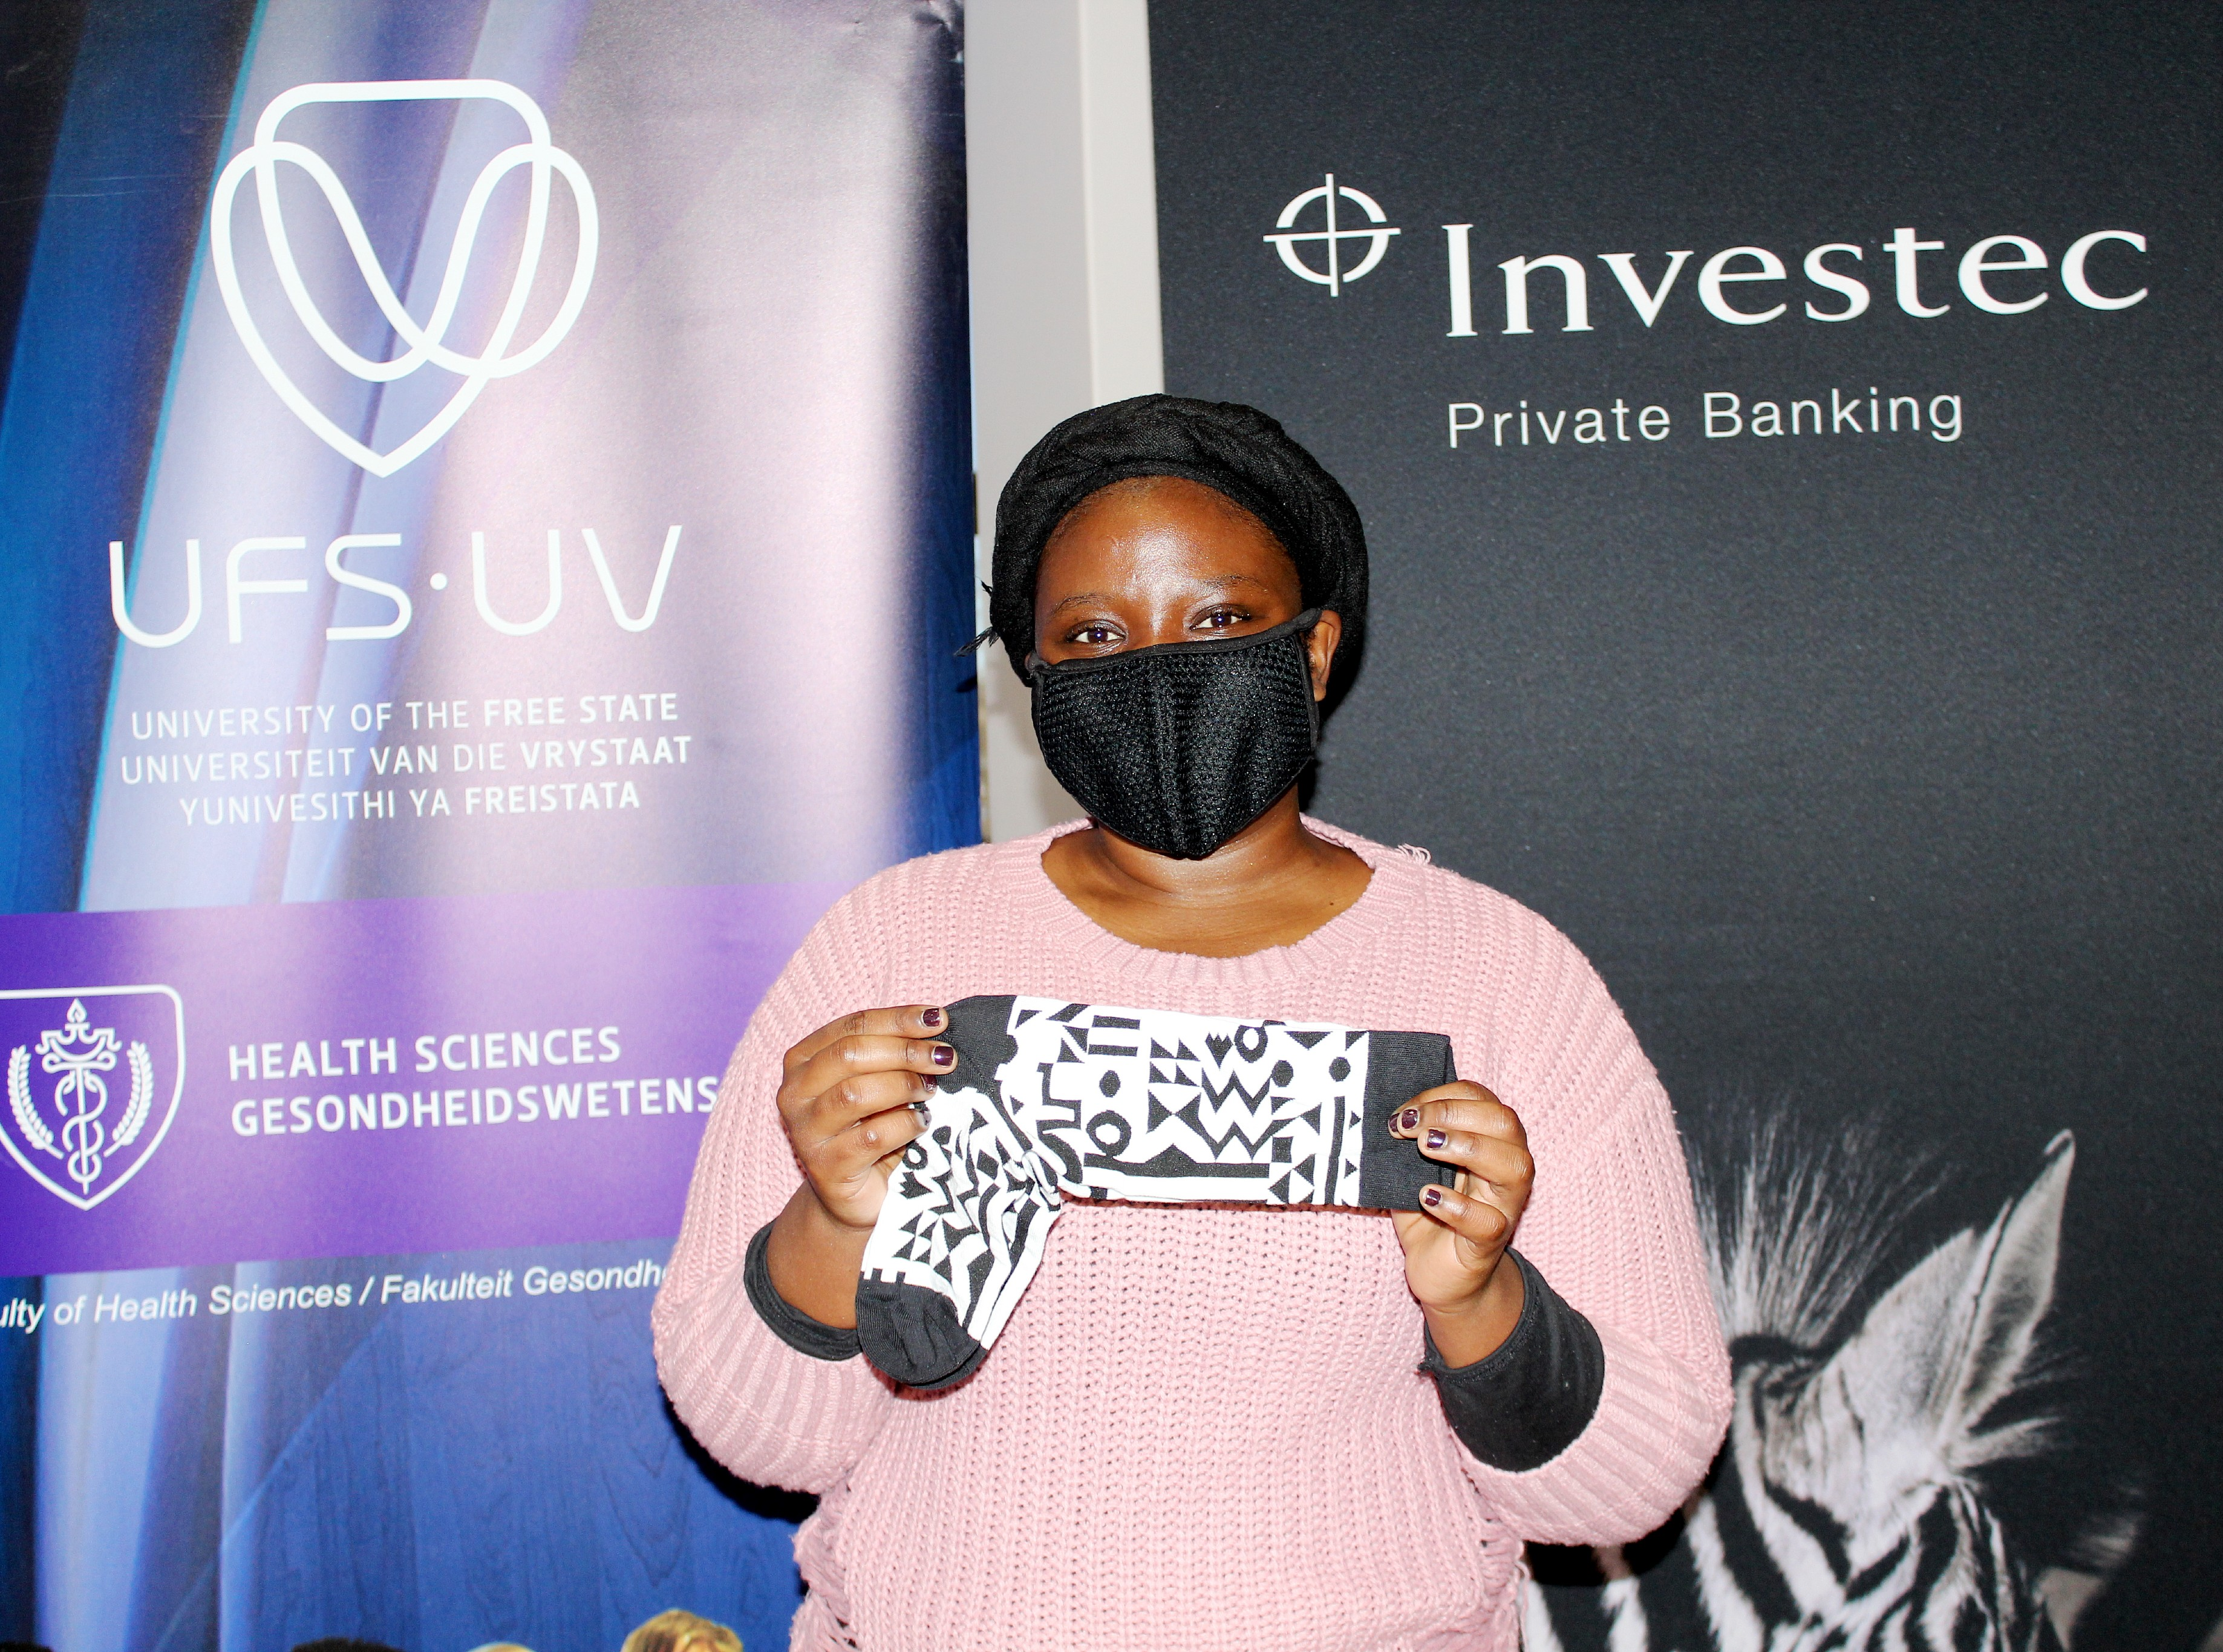 Nkabaneng Mamve, second-year student, shows off the crazy socks that she received on Friday (4 June 2021) from Investec Private Banking in support of the CrazySocks4Docs initiative.